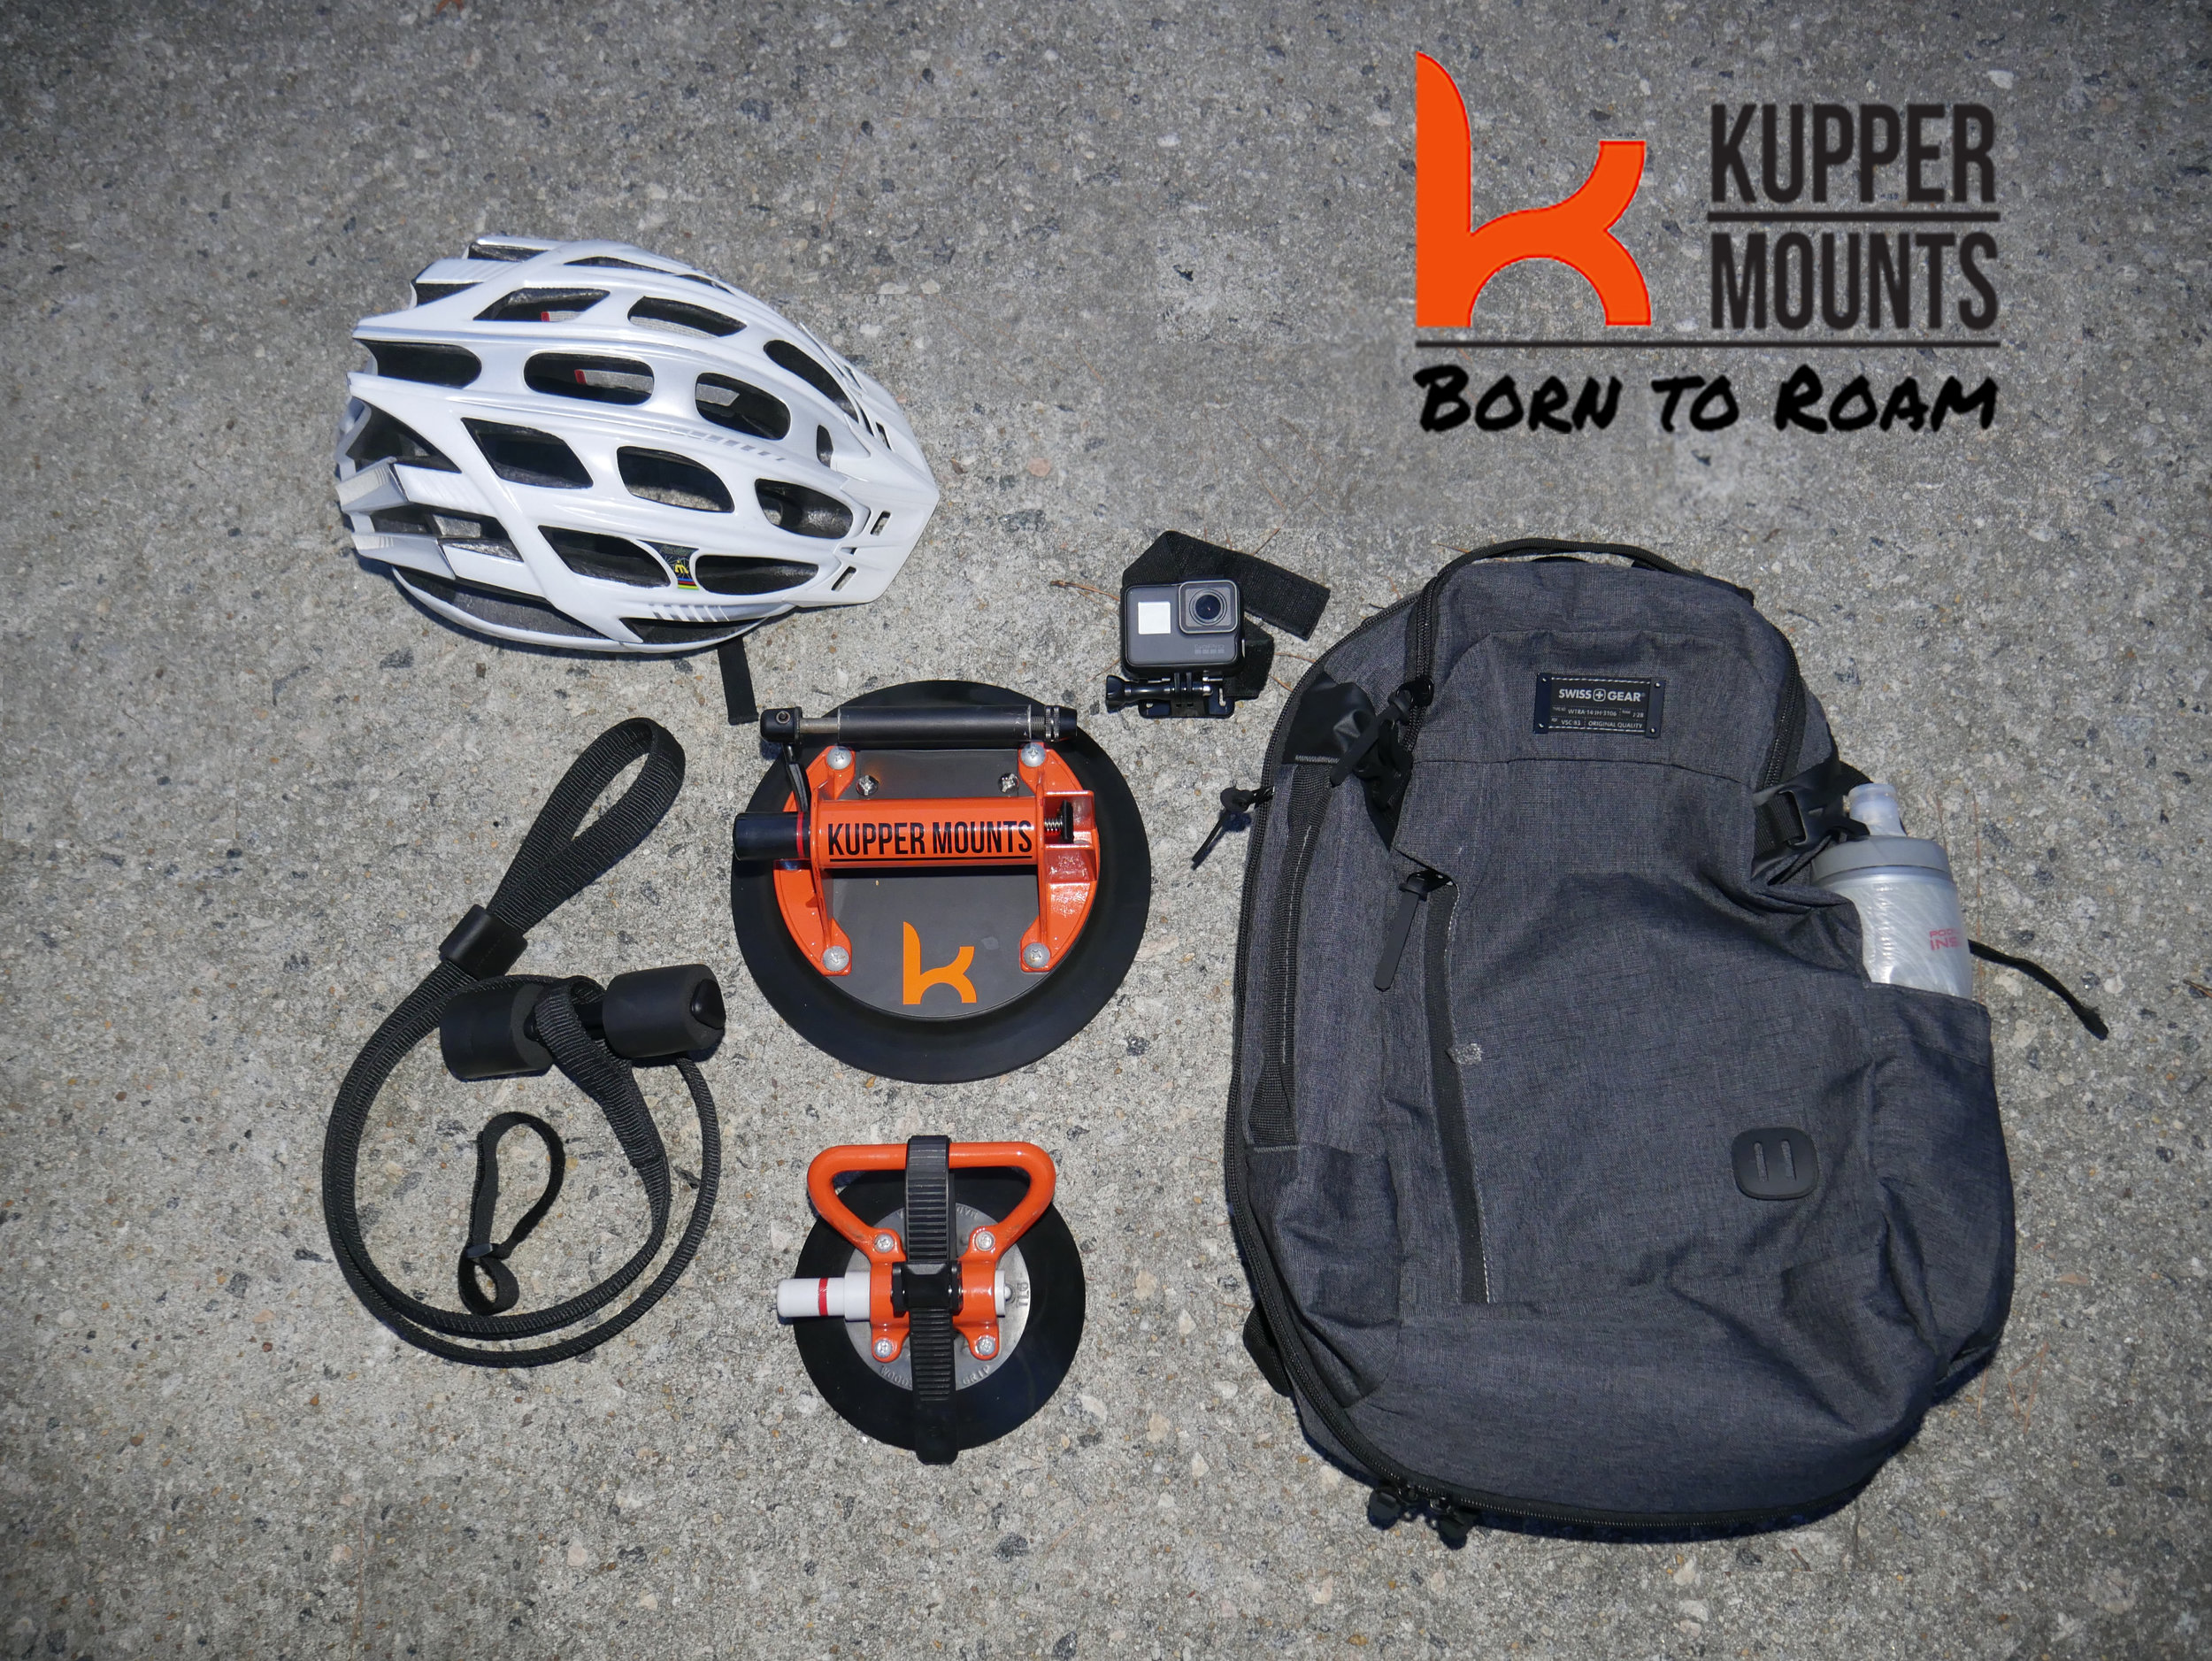 kupper Mounts were born to roam, bike Worldwide!Kupper Mount Bike Racks are Perfect for Traveling with a Bike on Airplanes & Trains.They Will Fit on any vehicle or Rental car, Van or SUV, regardless of Country.No Need to Install expensive Luggage Racks or Trailers Hitches -